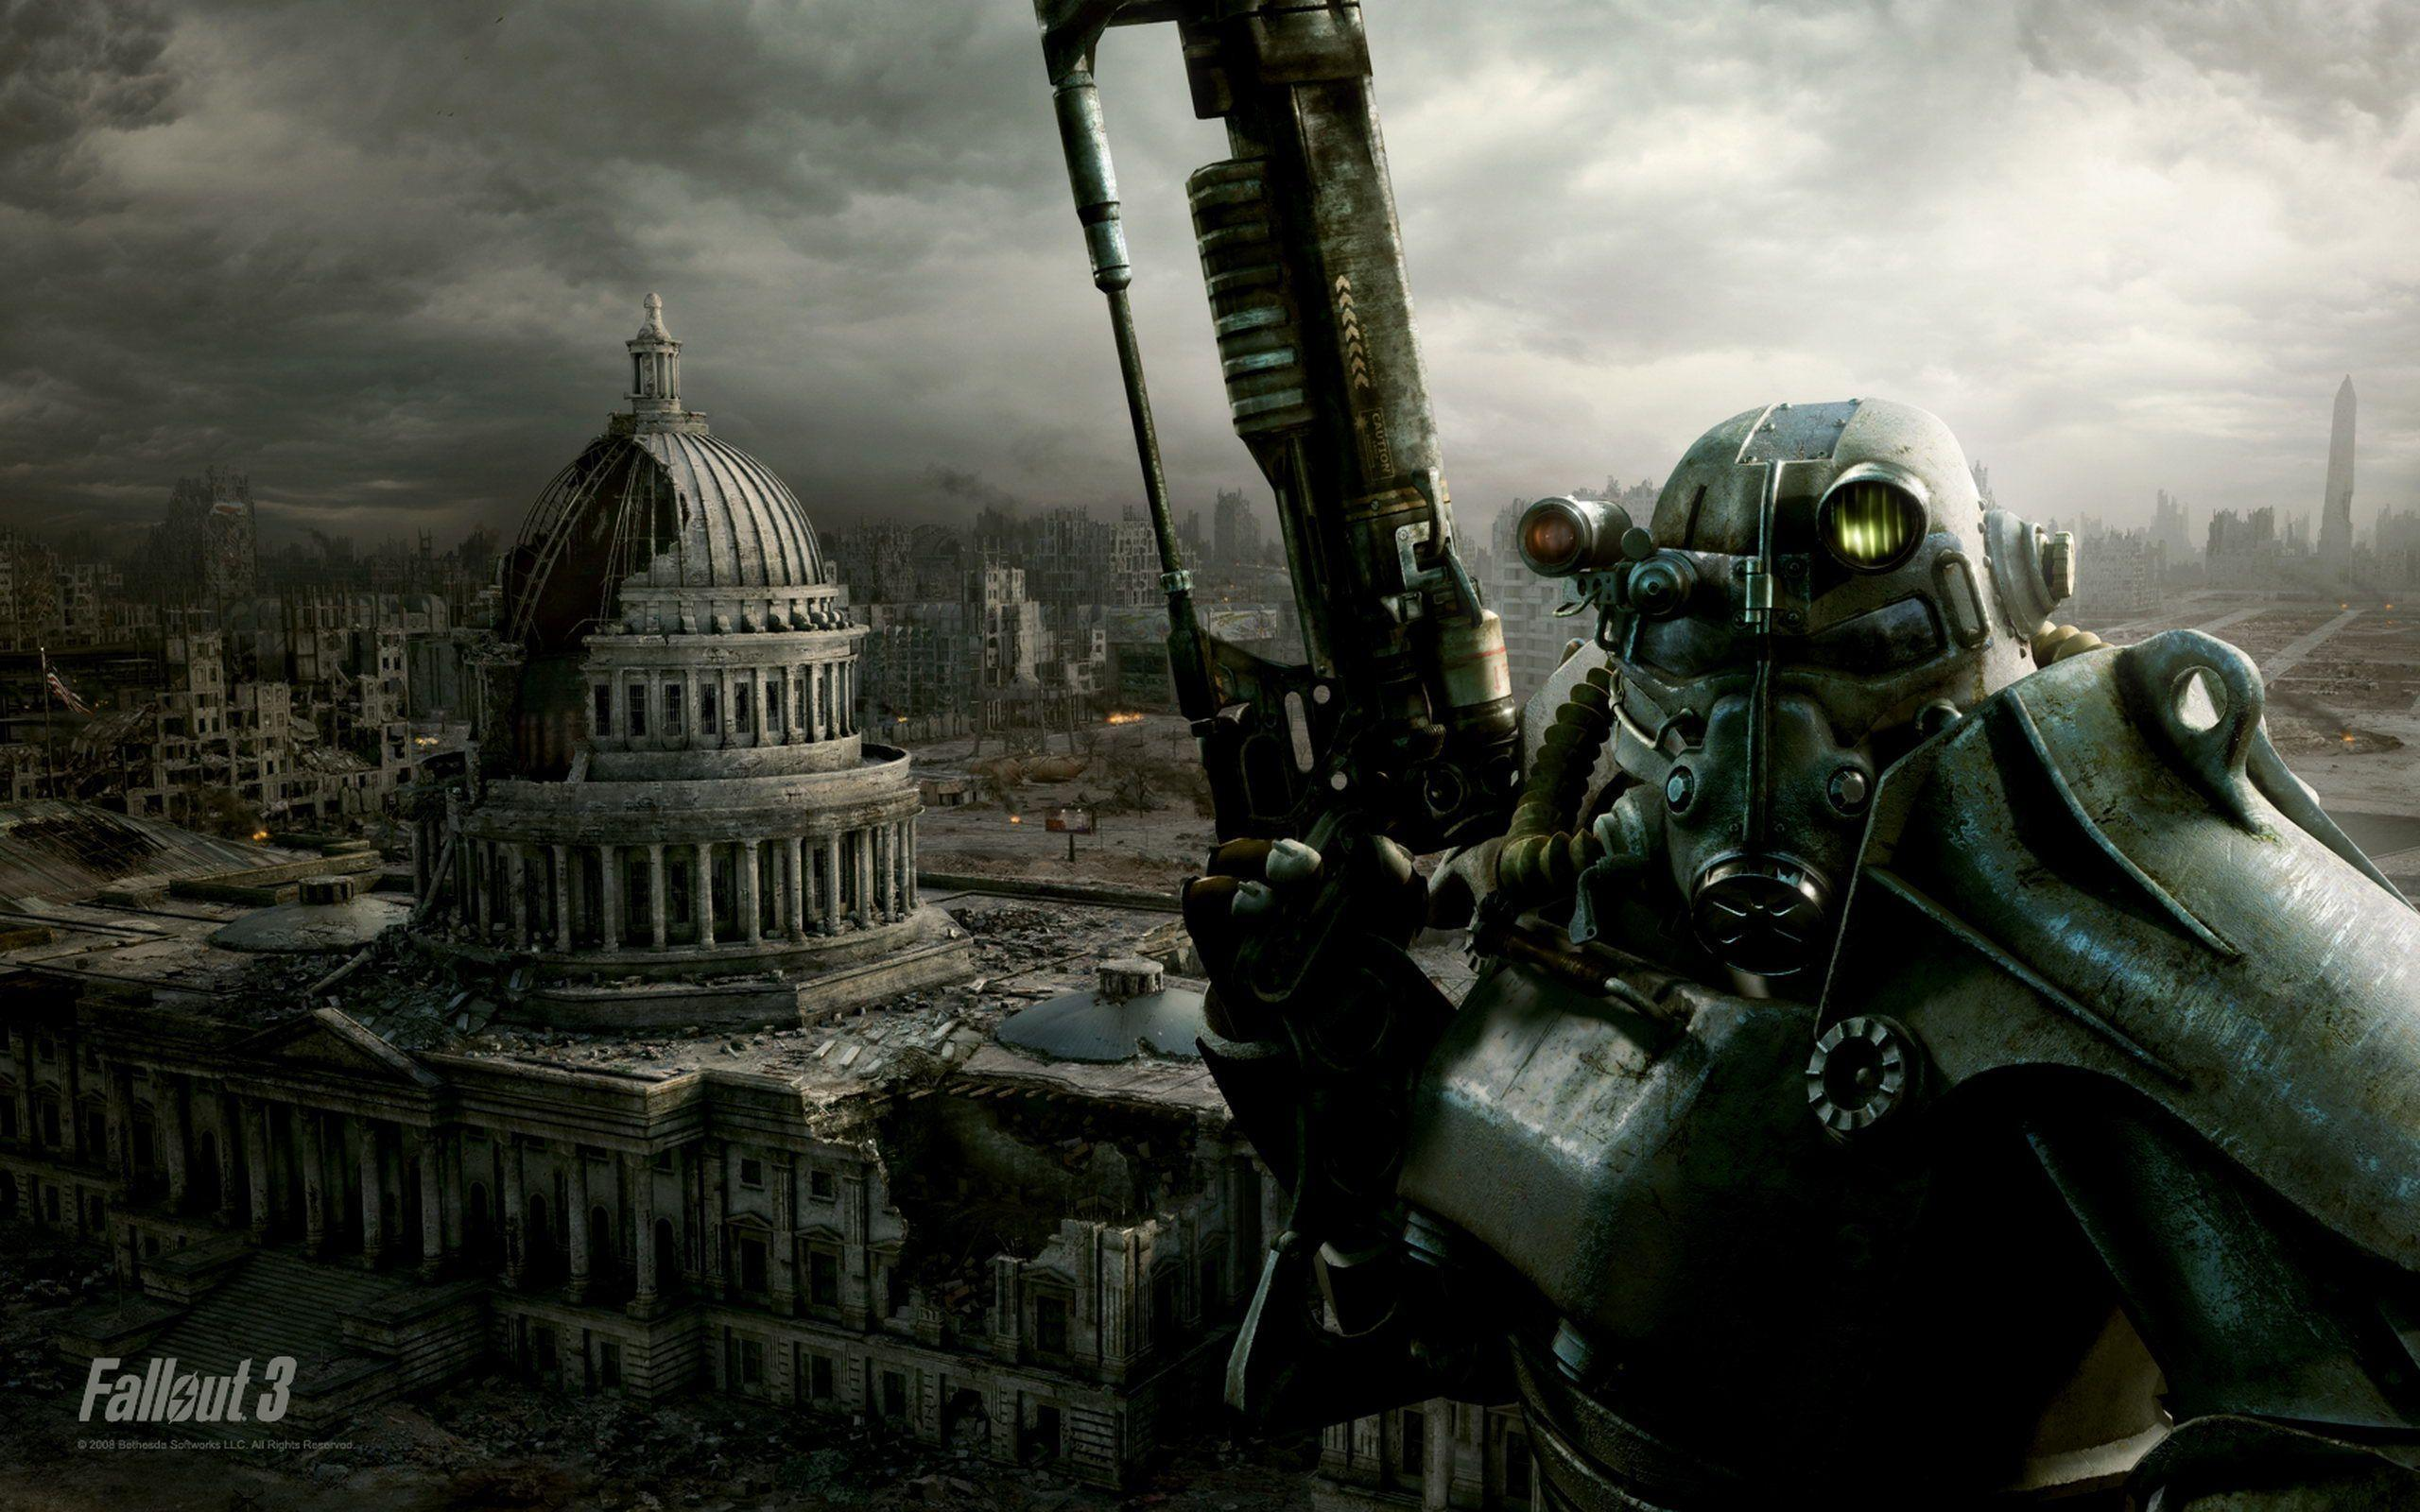 Fallout 3 wallpapers hd wallpaper cave fallout3 wallpapers full hd wallpaper search altavistaventures Images